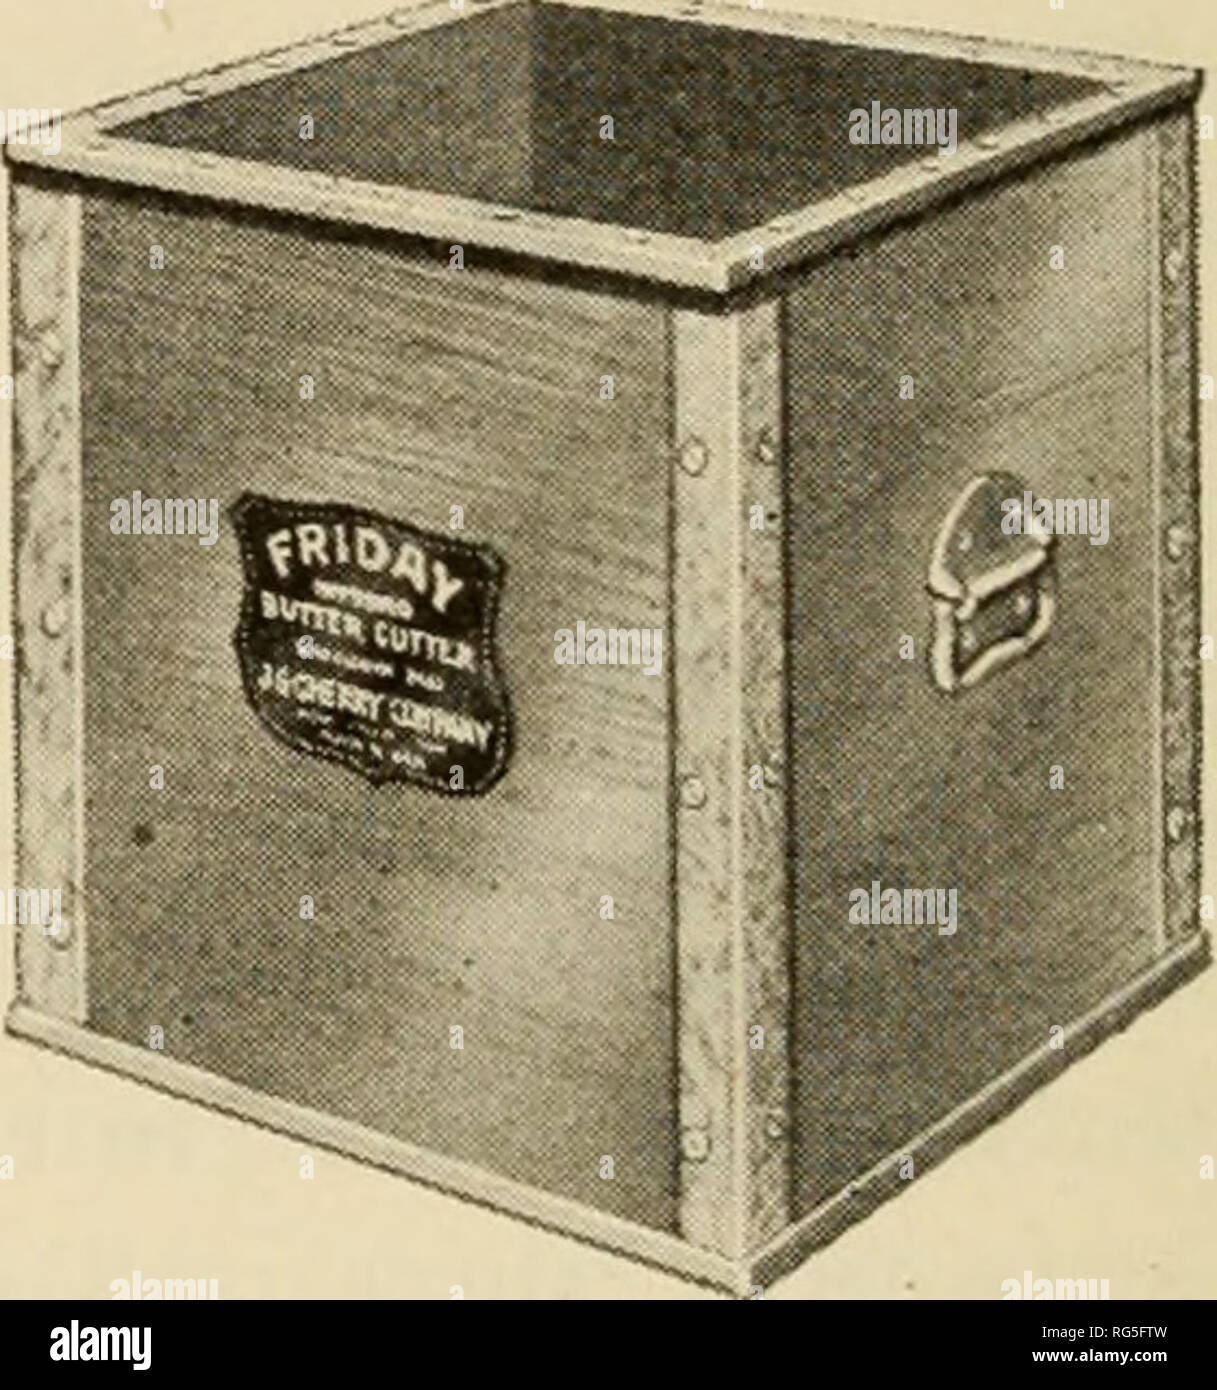 . The butter industry, prepared for the use of creameries, dairy students and pure food departments. Butter. Fig-. 74. Priday Box Pig-. 73. Priday Printer Courtesy J. G. Cherry Co. age is the one pound print of the following standard dimensions: 2^ X 2^ X 4^ inches, wrapped in parchment, or wax paper, or both and slipped into a carton. Some creameries wrap an additional paper around the carton and seal it at both ends. Considerable quantities of butter are sold in one-half pound and one-quarter pound prints wrapped in the same manner as the one pound prints and varying in shape from a flat sla Stock Photo